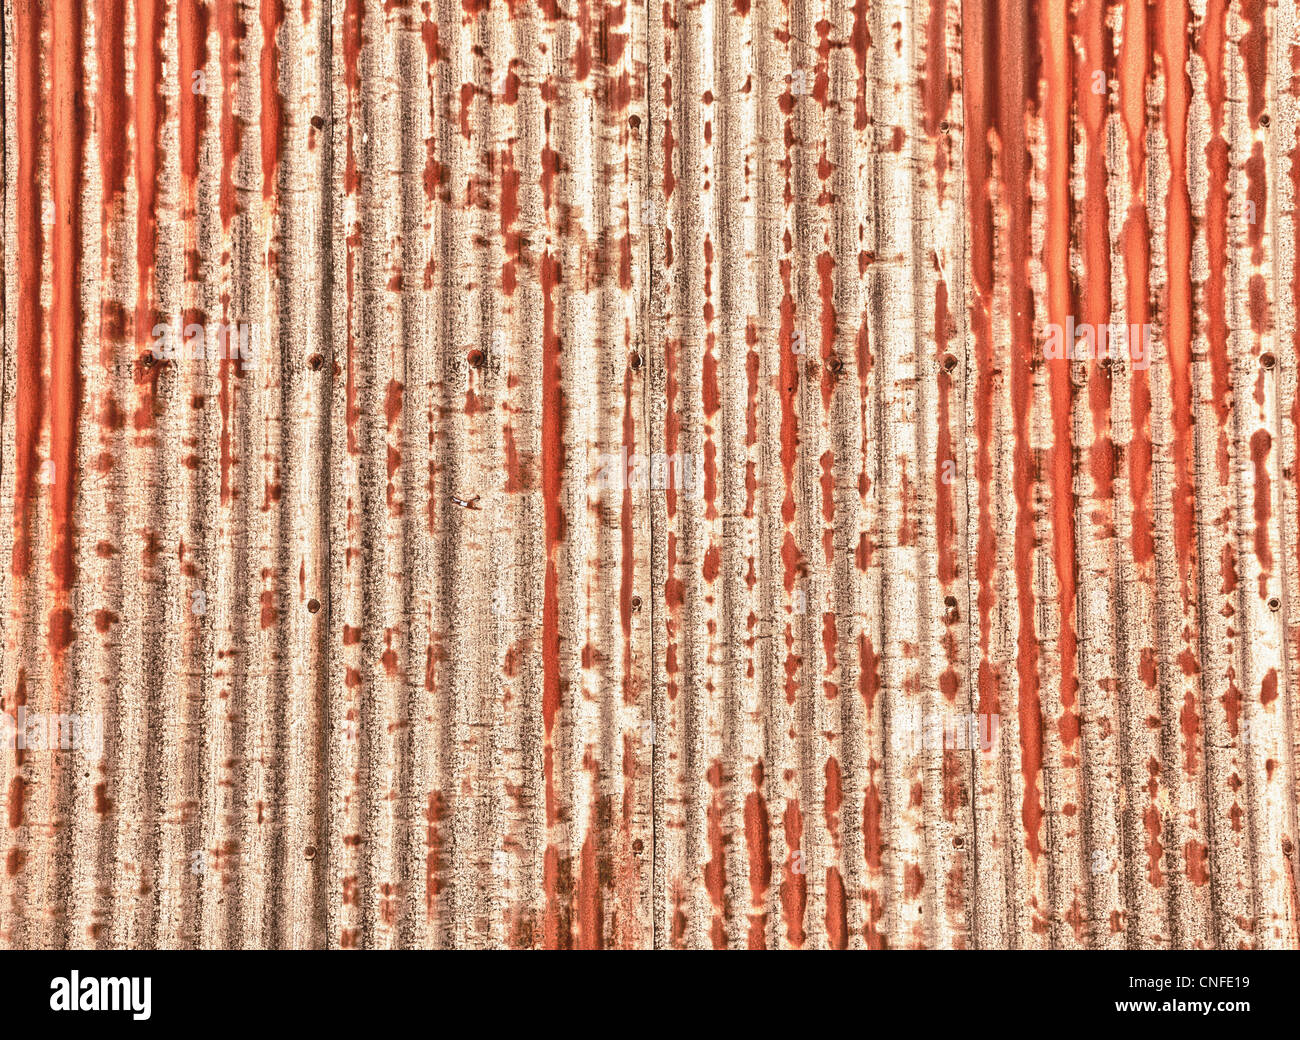 Close up of a sheet of corrugated metal rusting and processed in HDR - Stock Image